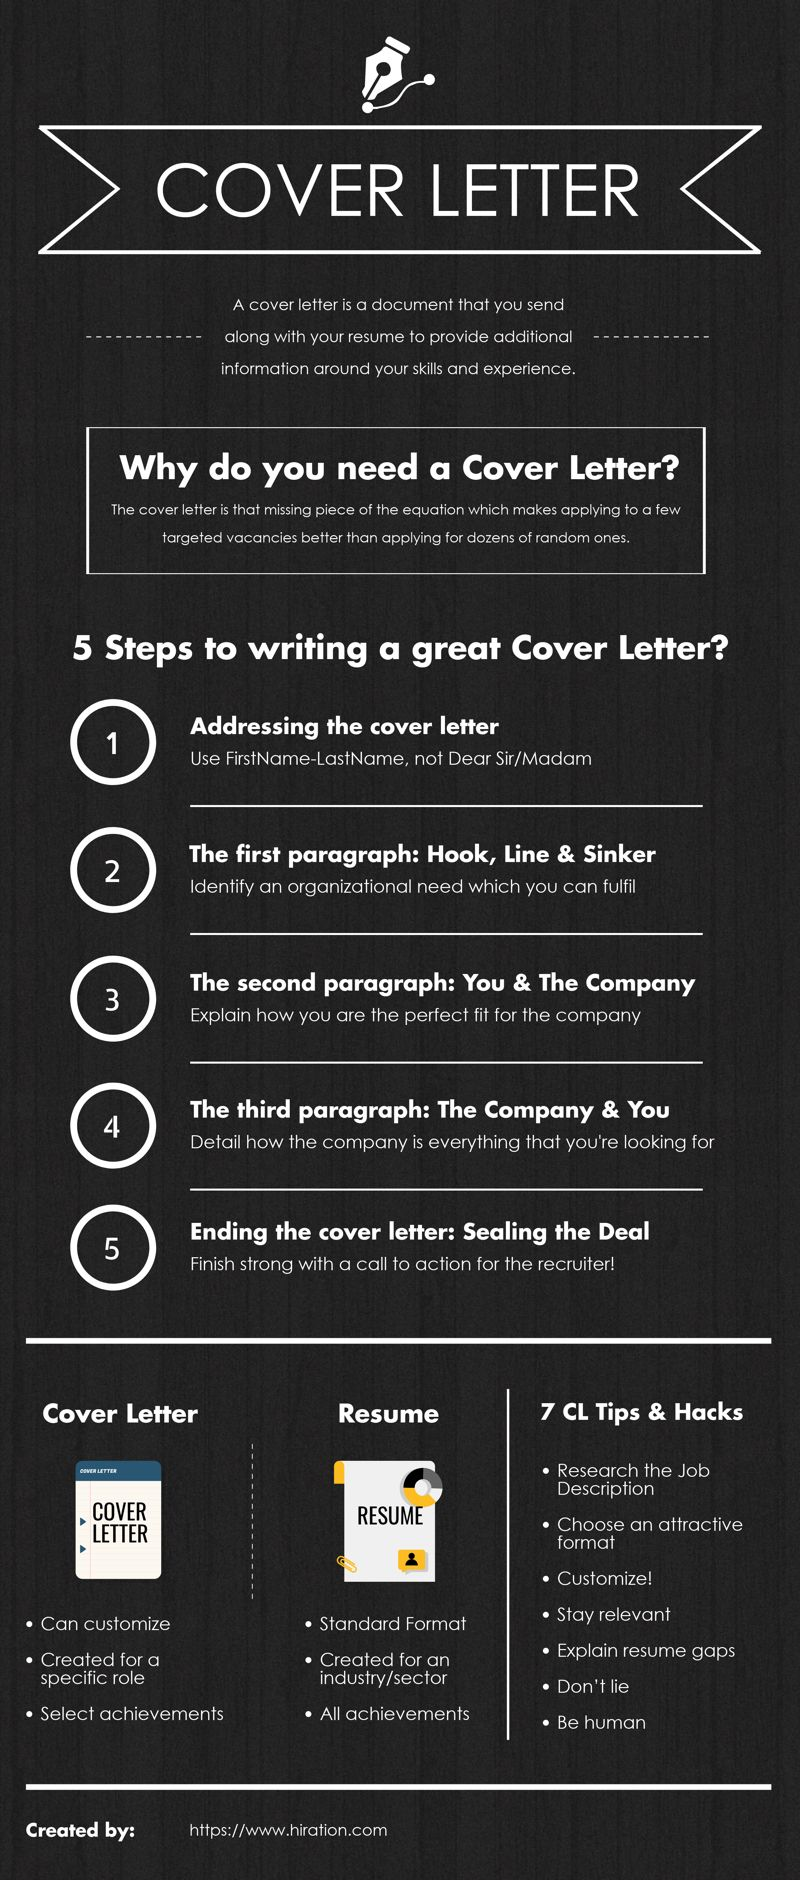 This Infographic On How To Write A Cover Letter Is The Abridged Guide Writing